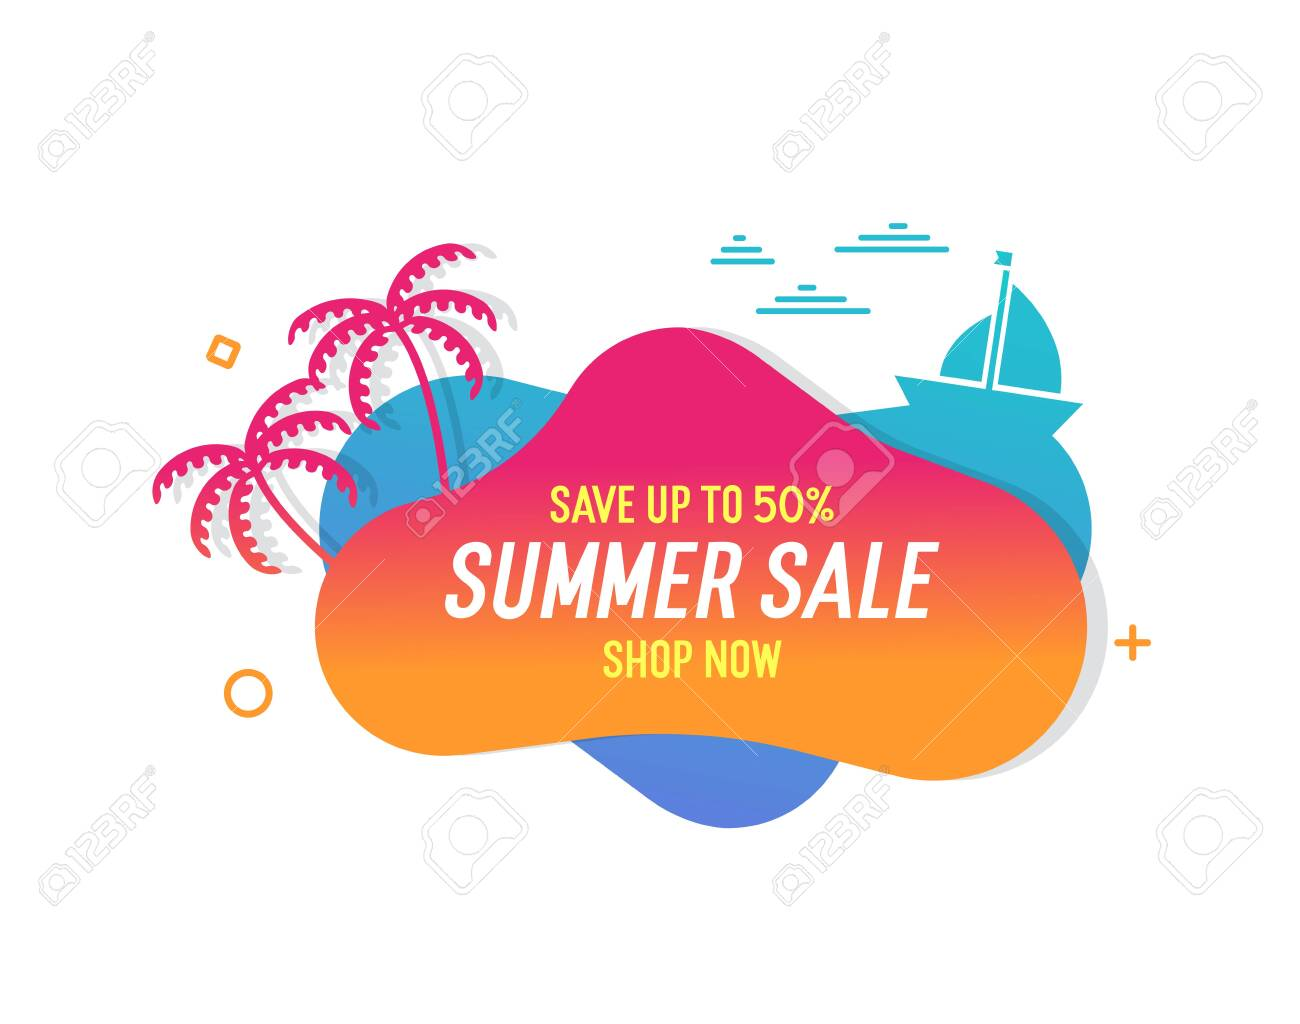 Trendy colorful summer sale banner with palmtrees, boat and waves.. Vector geometric template liquid and wavy shapes with gradient colors. Modern abstract tropical and seasonal banner design - 134503208